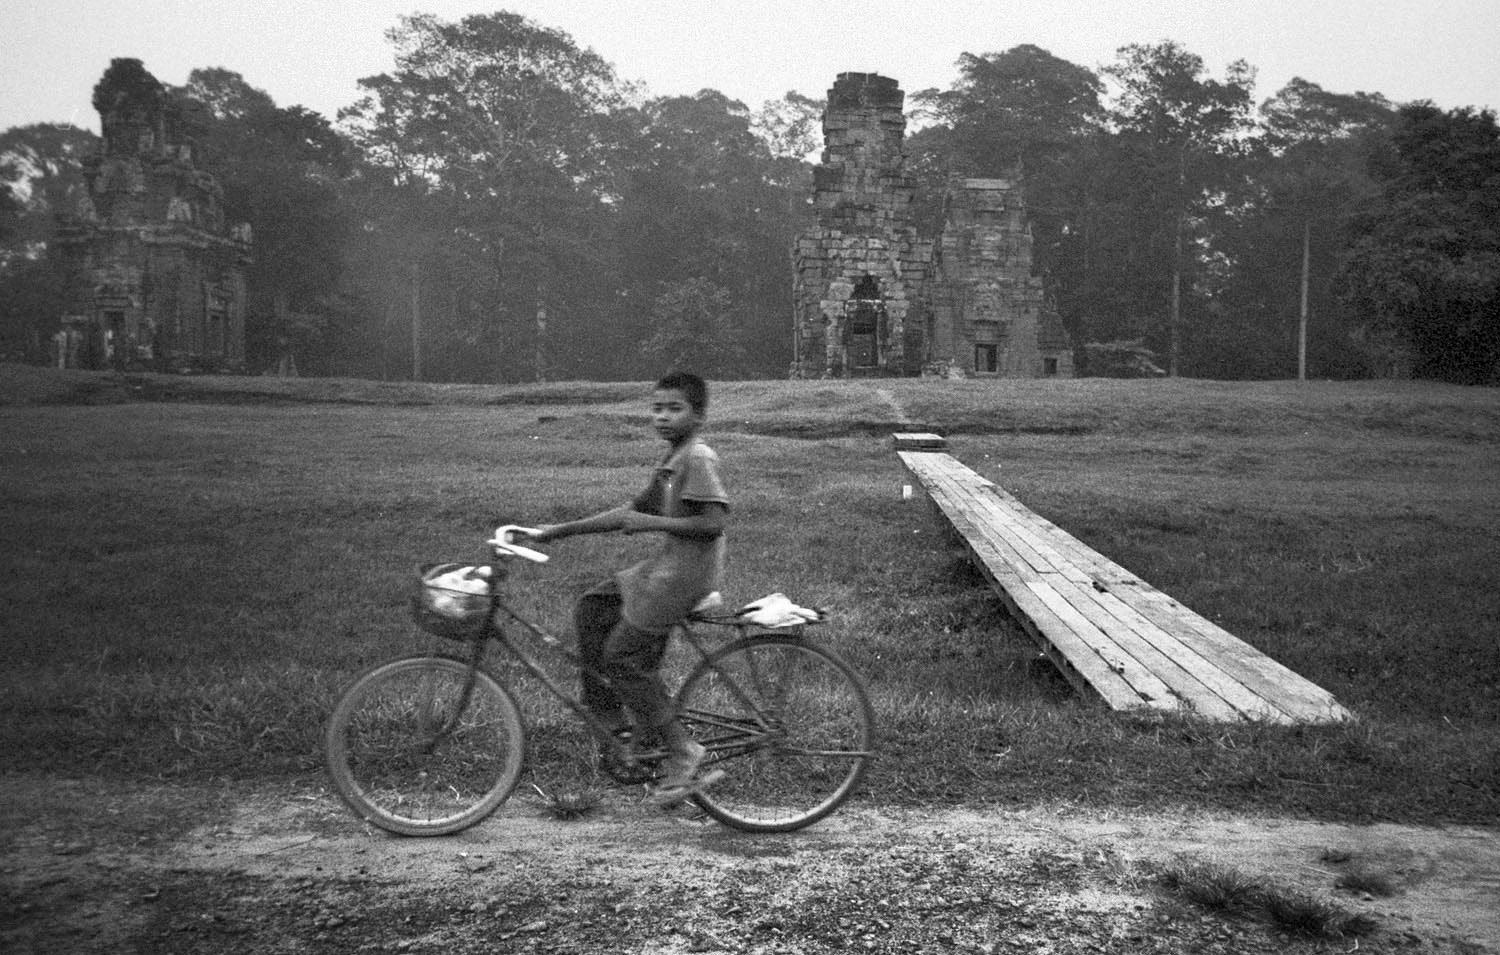 Boy on bicycle (Pic: Lester Ledesma)